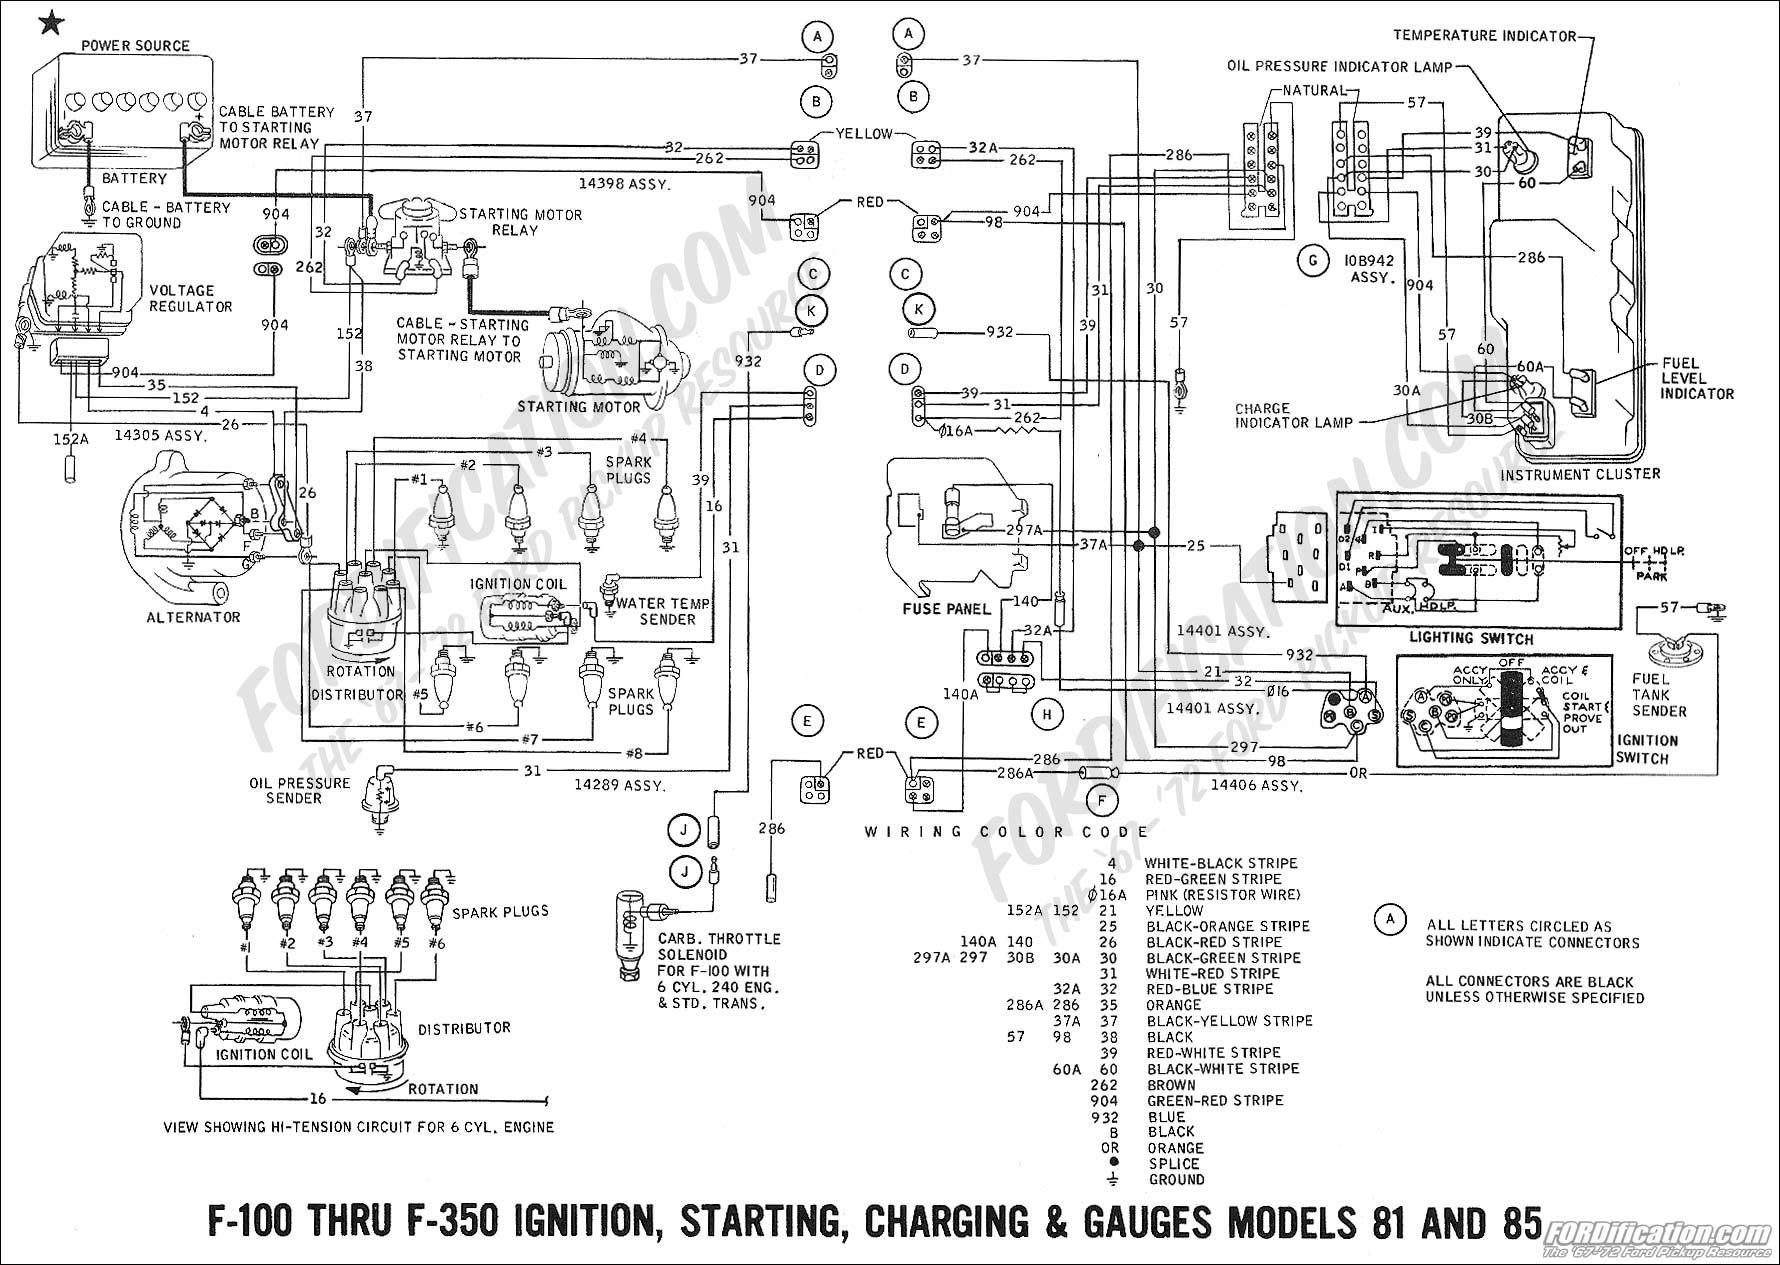 80 wiring_1969charging2_e13769e09e0a9fccb637ec877c2082bccb3ff24d how to go from mechanical to electric voltage regulator ford Ford 3 Wire Alternator Diagram at eliteediting.co